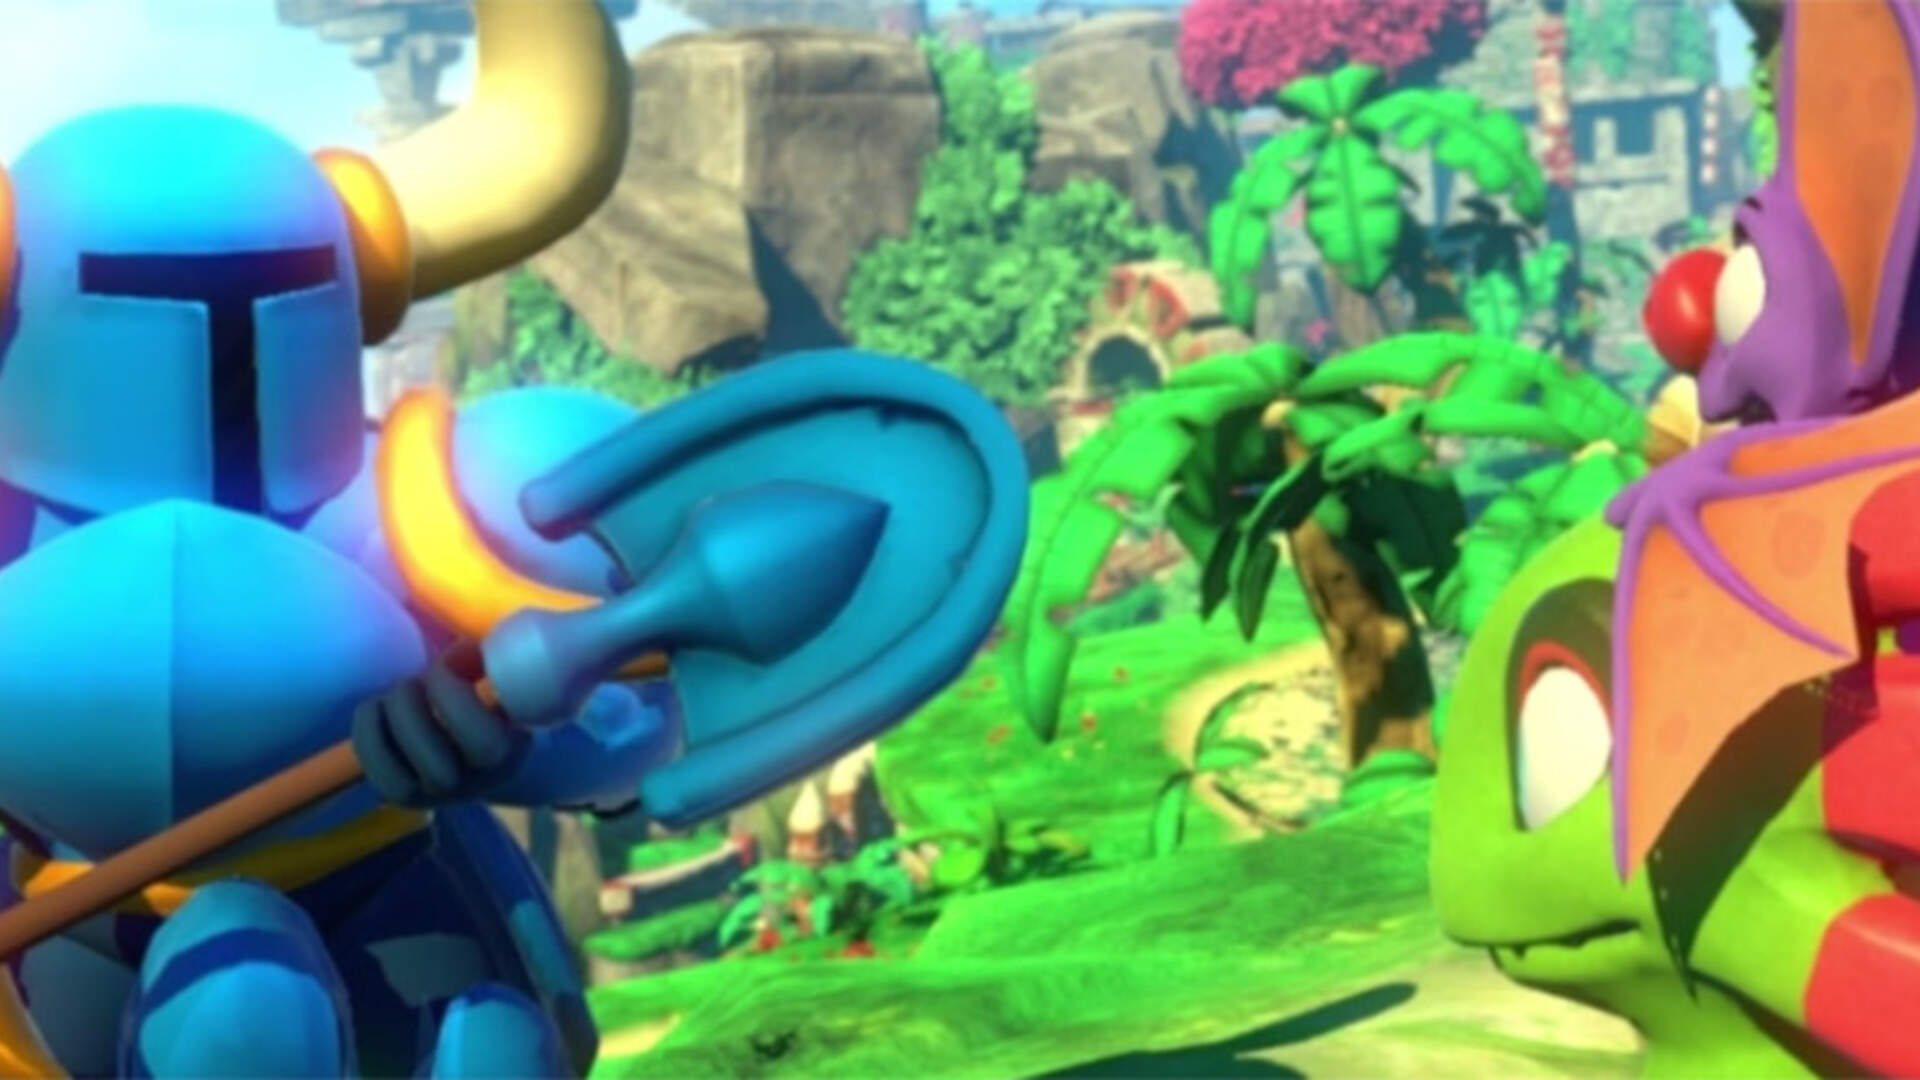 Shovel Knight Digs Into Yooka-Laylee's World